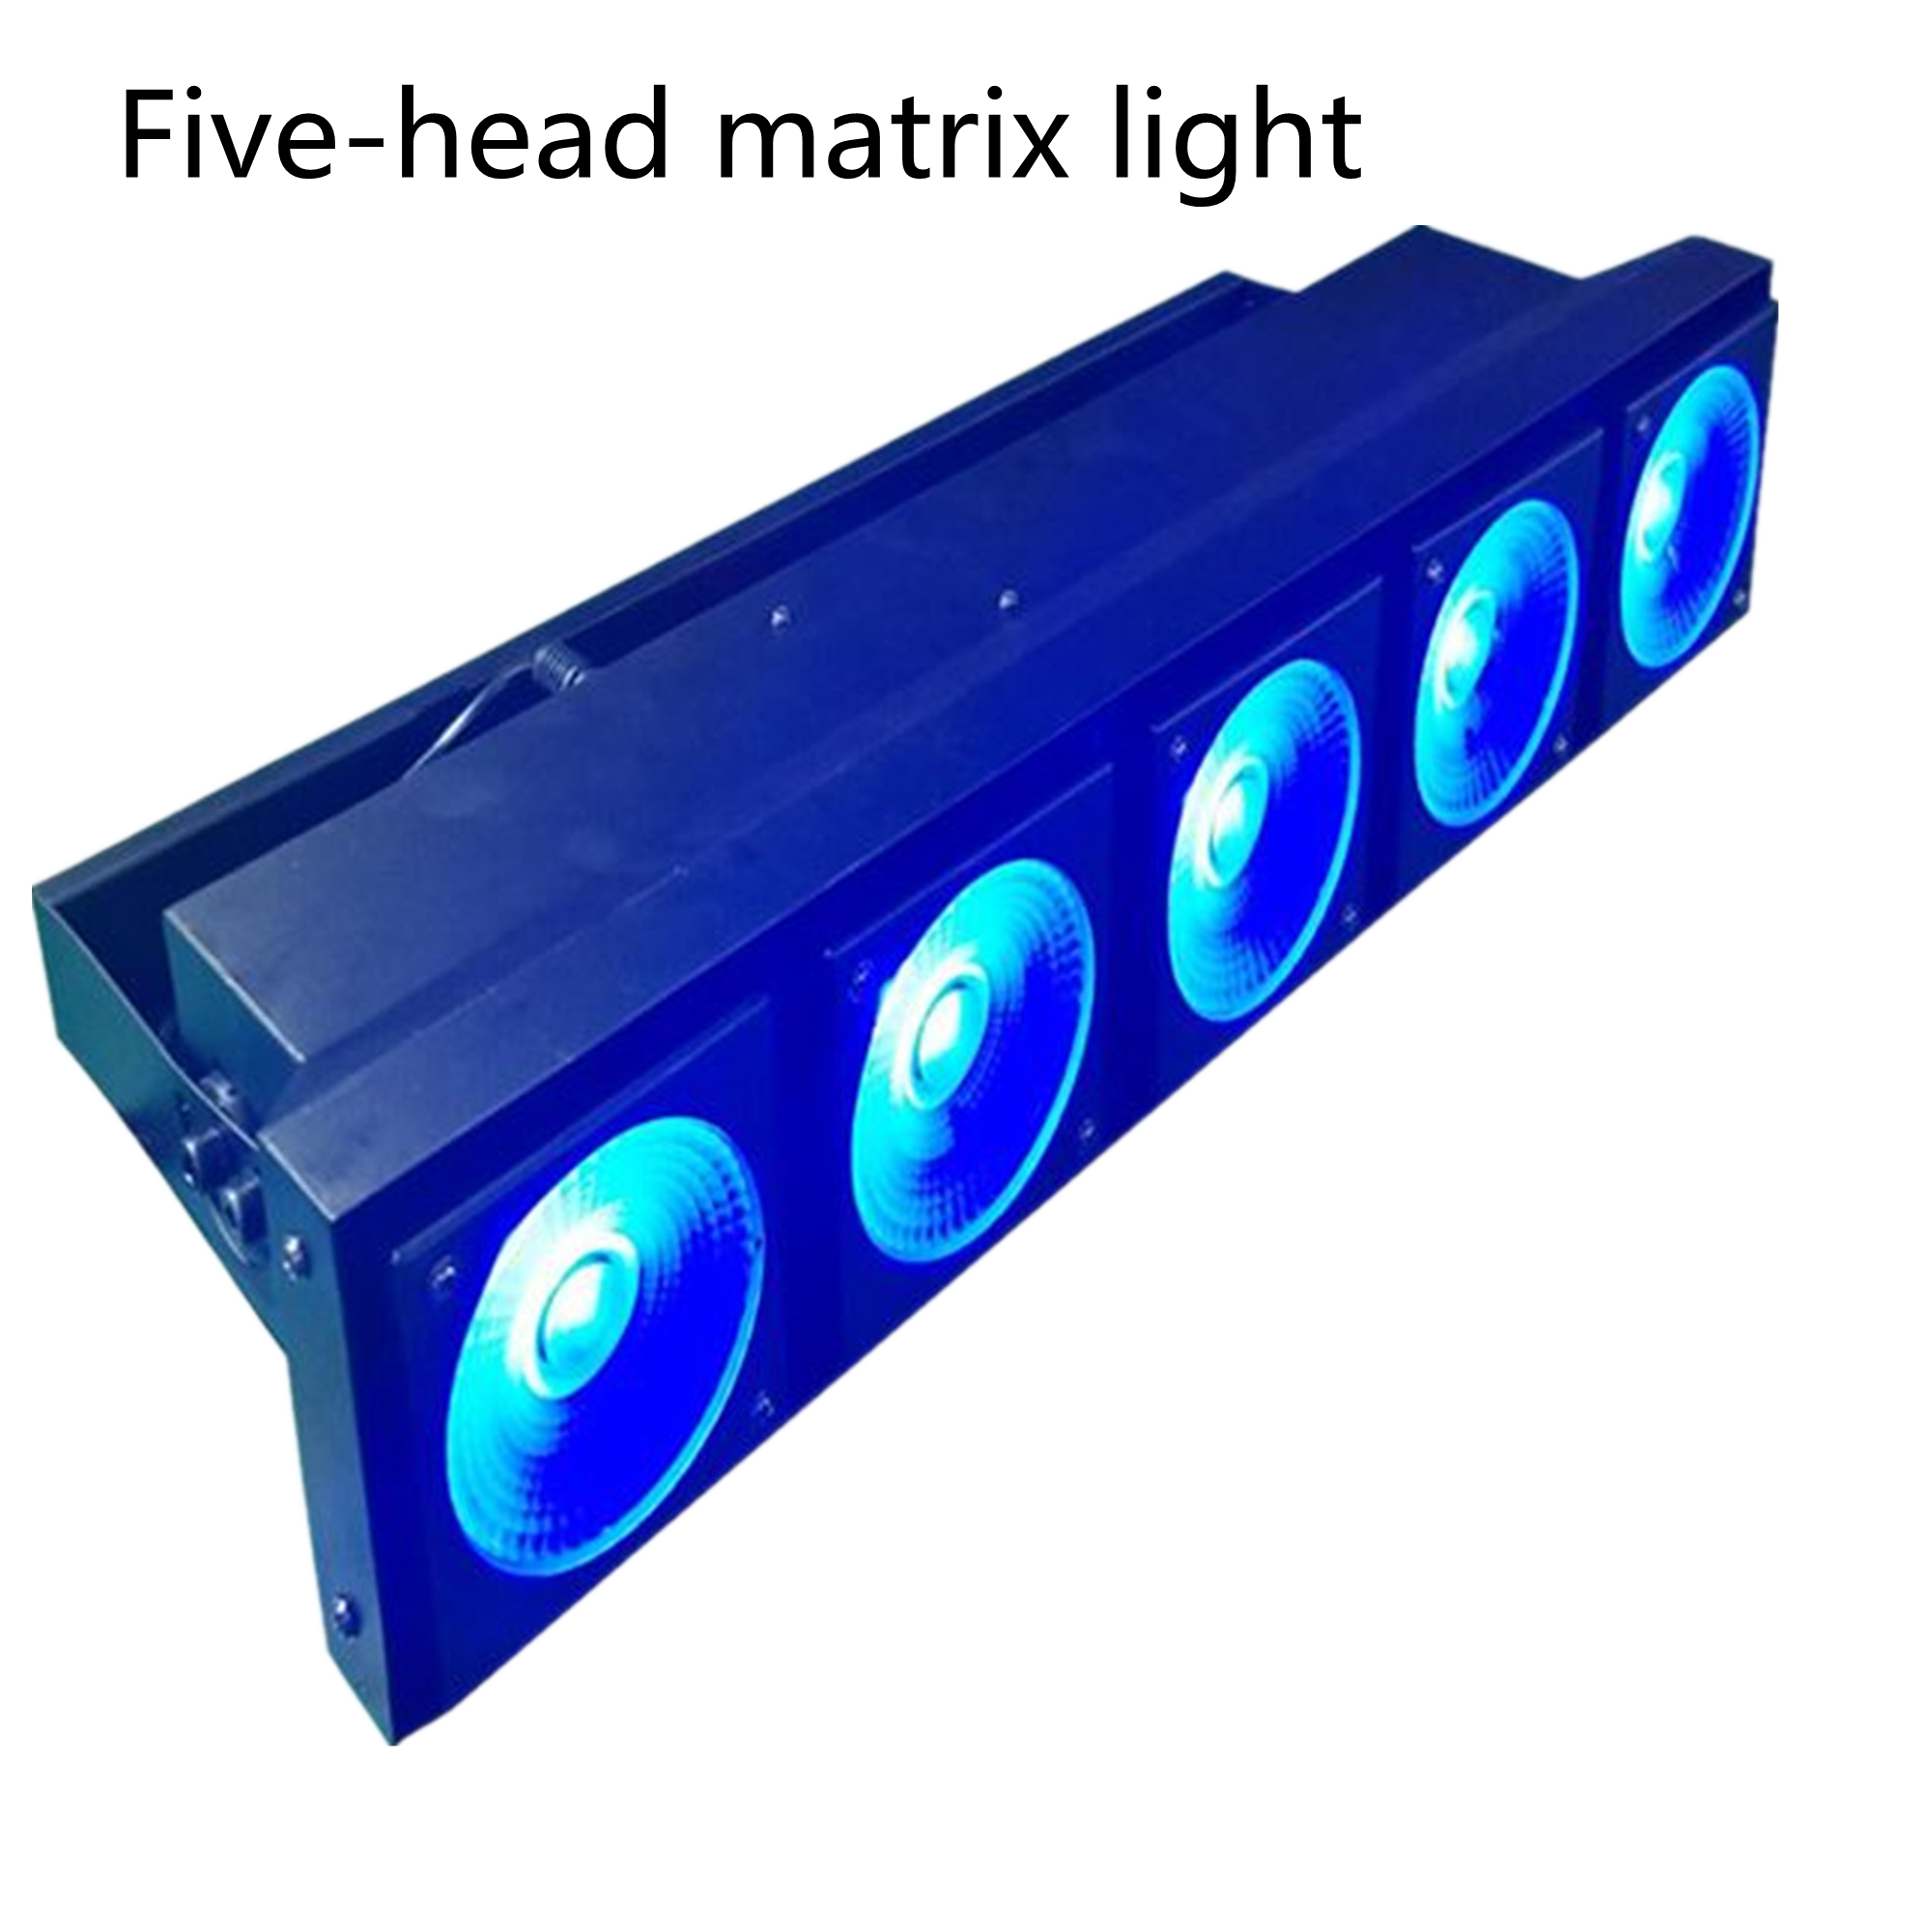 Five-head matrix lights can be used for professional lighting such as clubs and family gatherings